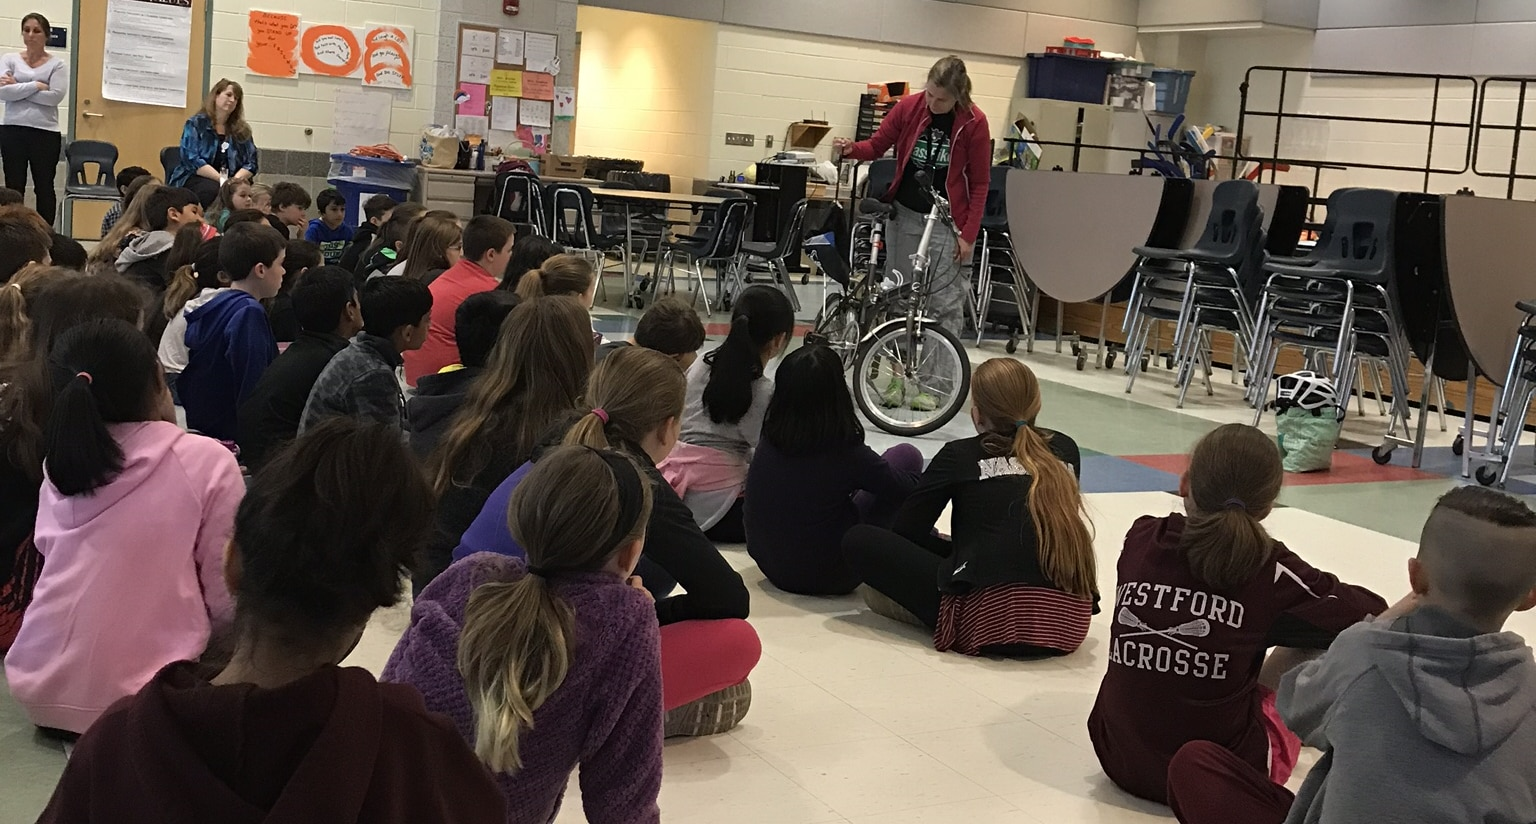 Children learning about bicycle safety